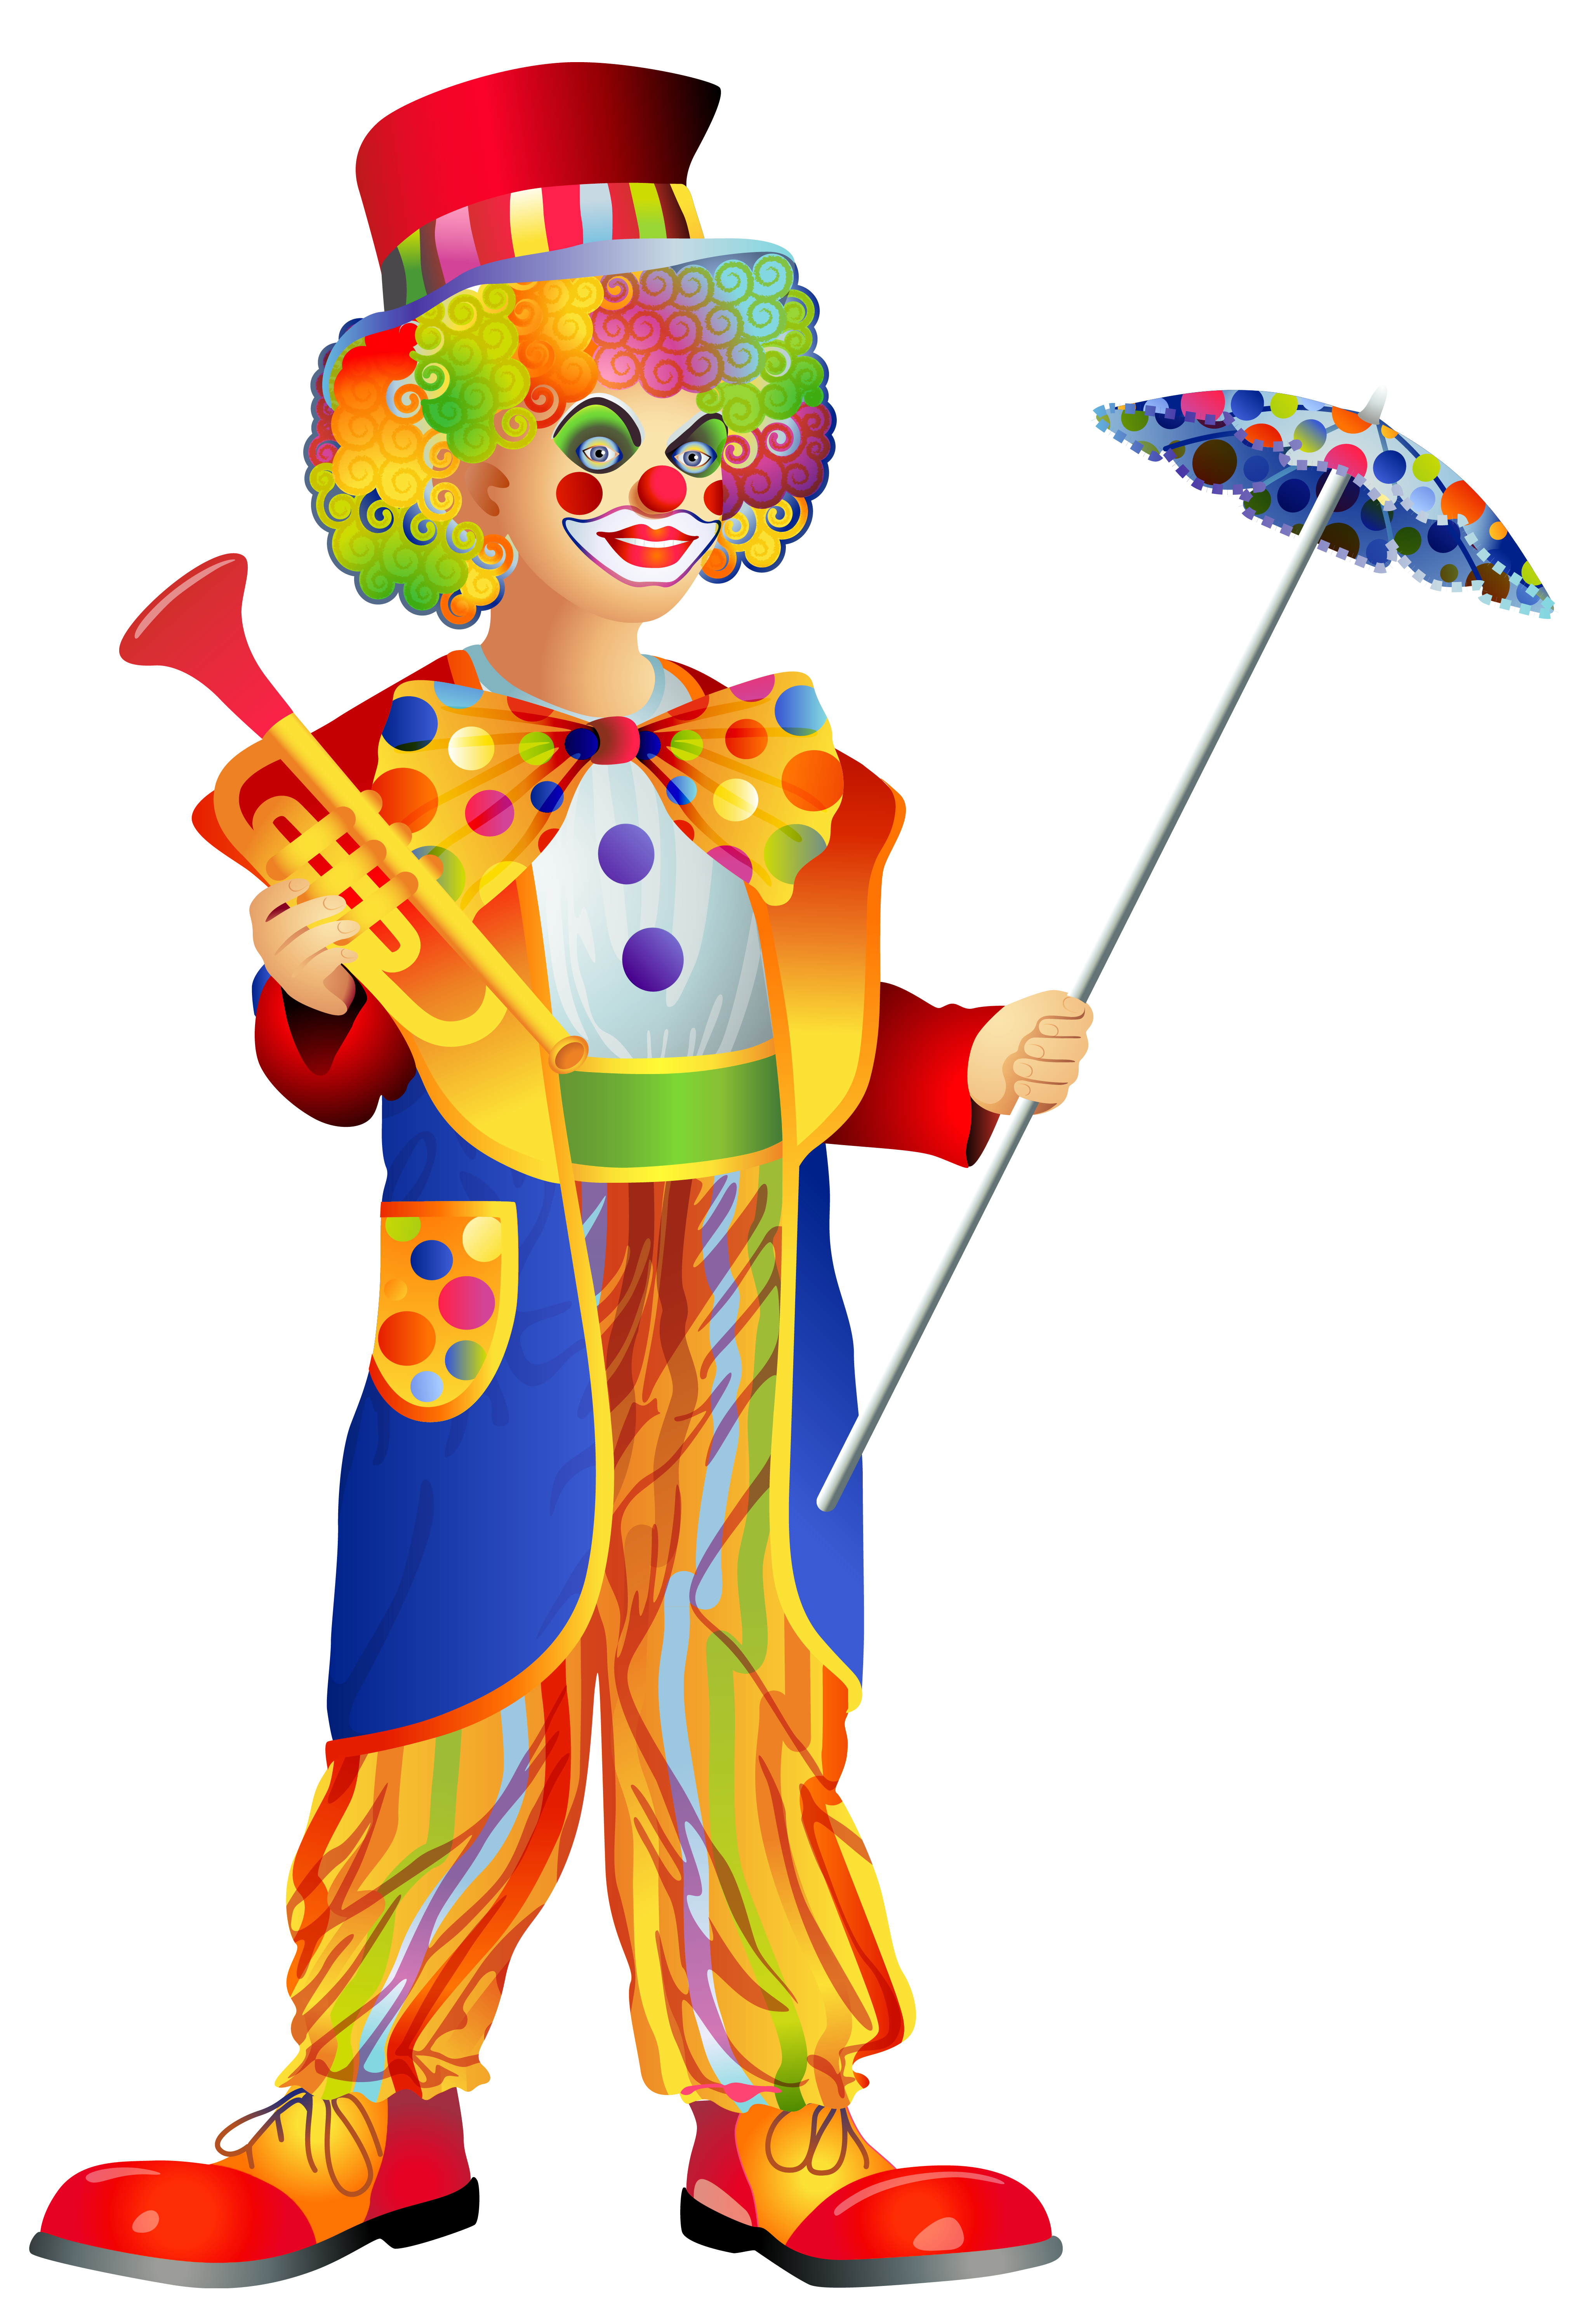 black and white download Png clip art image. Happy clown clipart